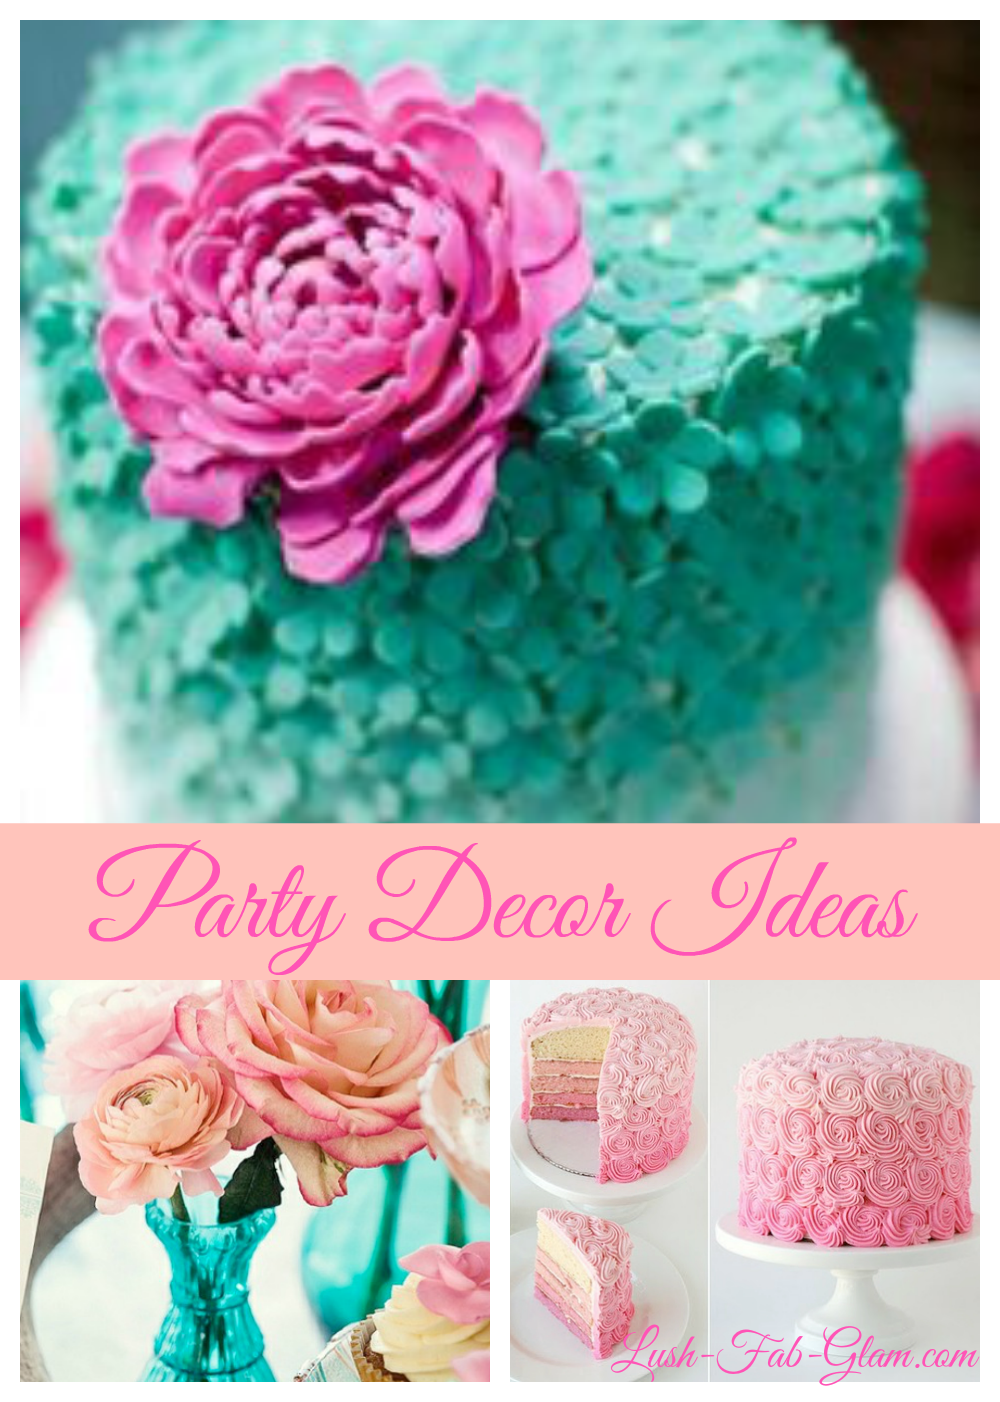 http://www.lush-fab-glam.com/2014/01/party-decor-inspiration-fabulous-in.html